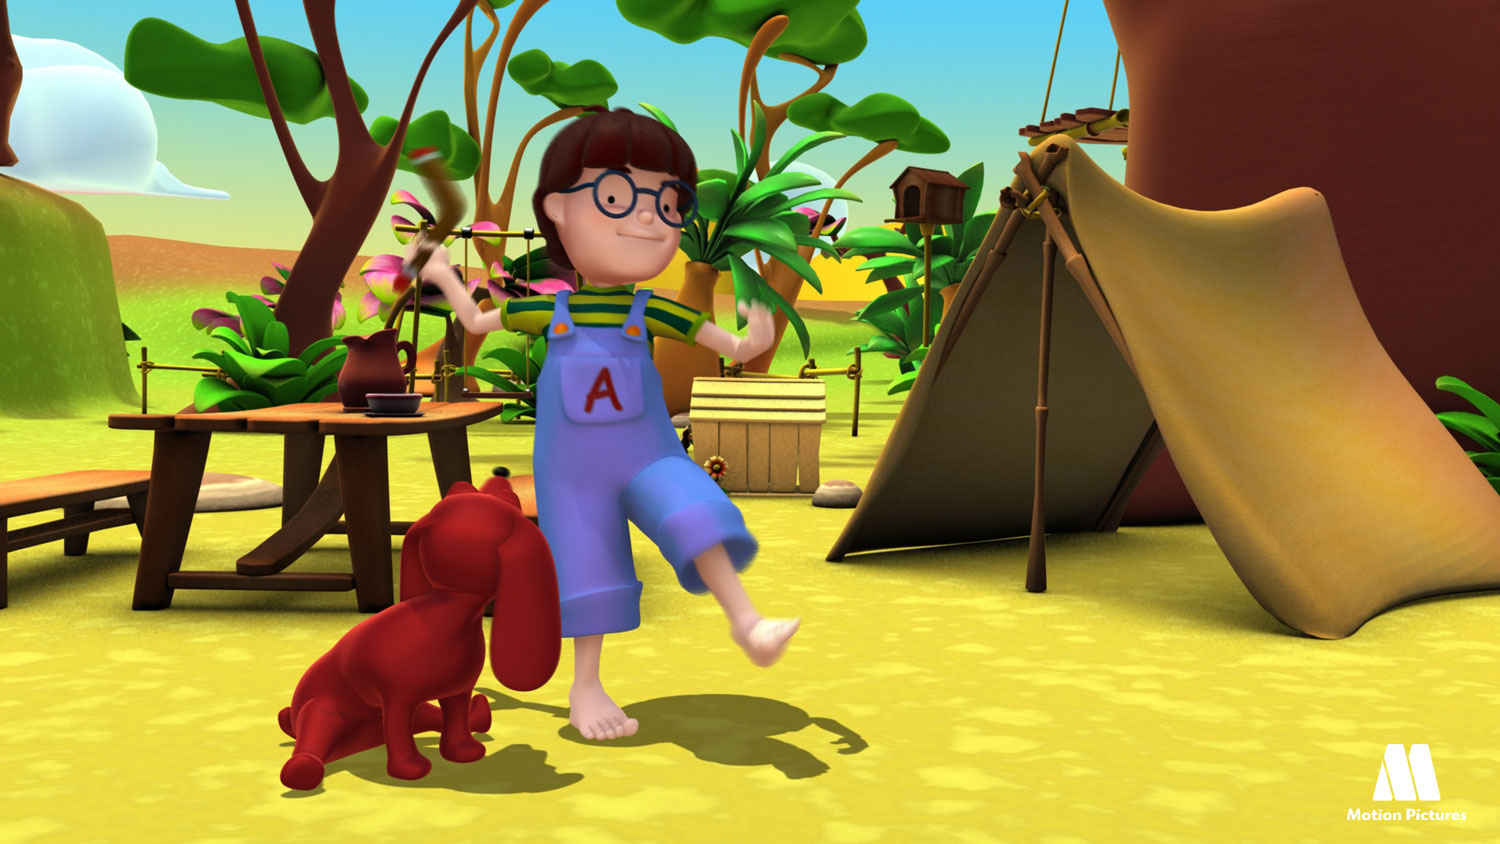 Alex de acampada - Alex, Serie animacion educativa, education cartoon series